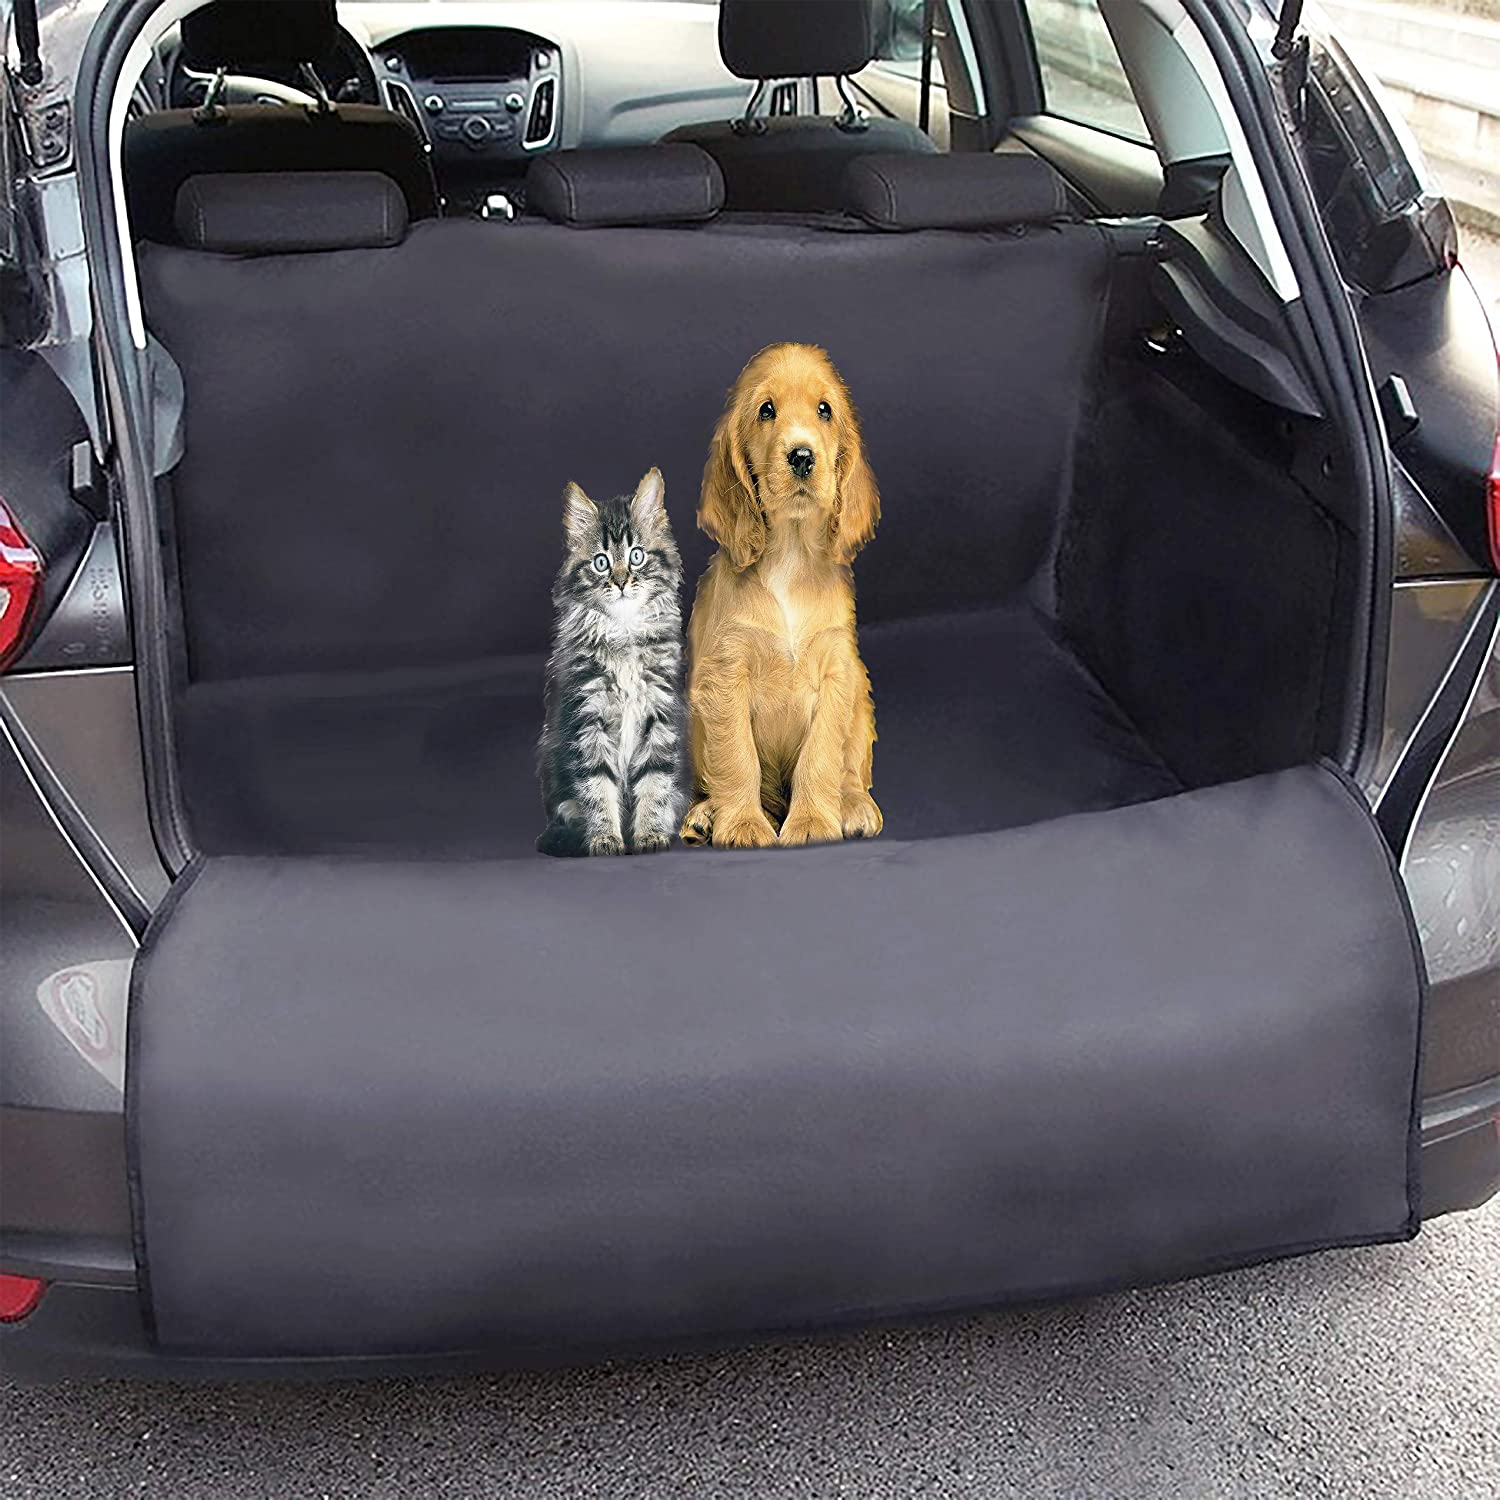 MAYA77 Waterproof Dog Car Seat Cover- Non-Slip Hammock Blanket Set Cover, Best Pets Travel Accessories for Dogs